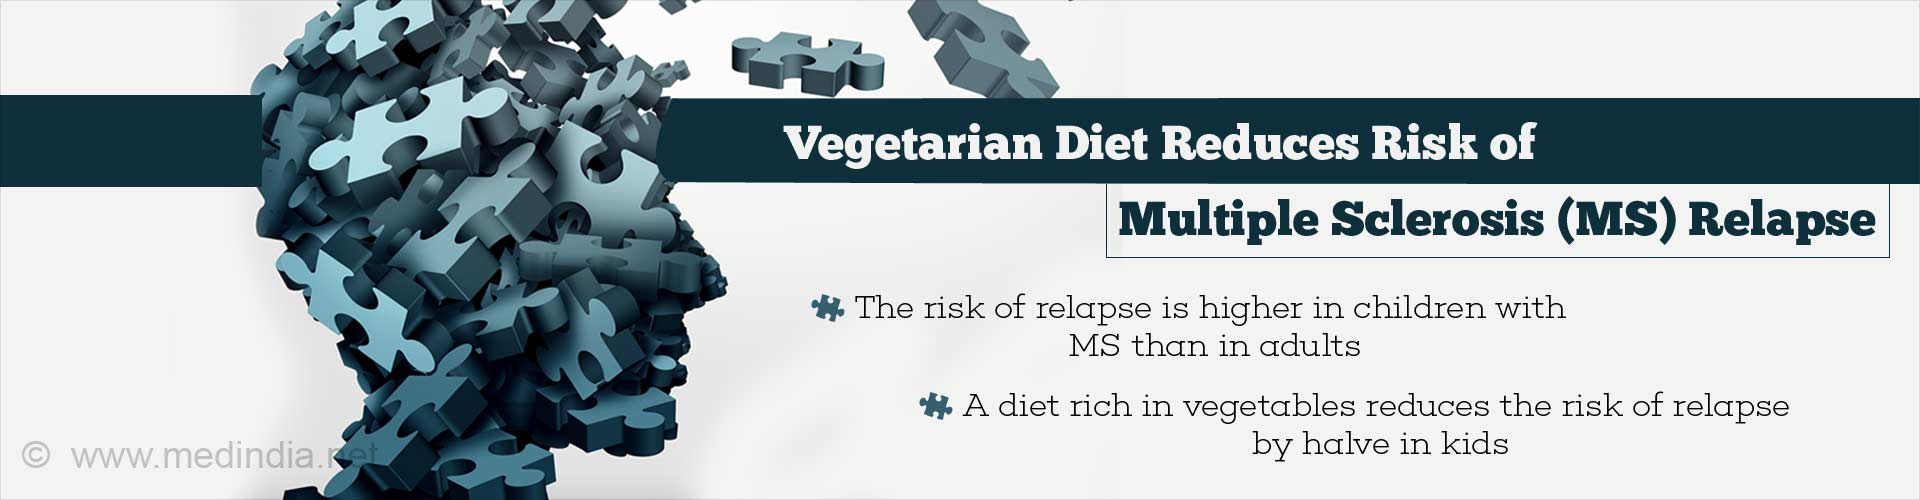 Vegetarian Diet reduces Risk of Relapse in Kids With Multiple Sclerosis